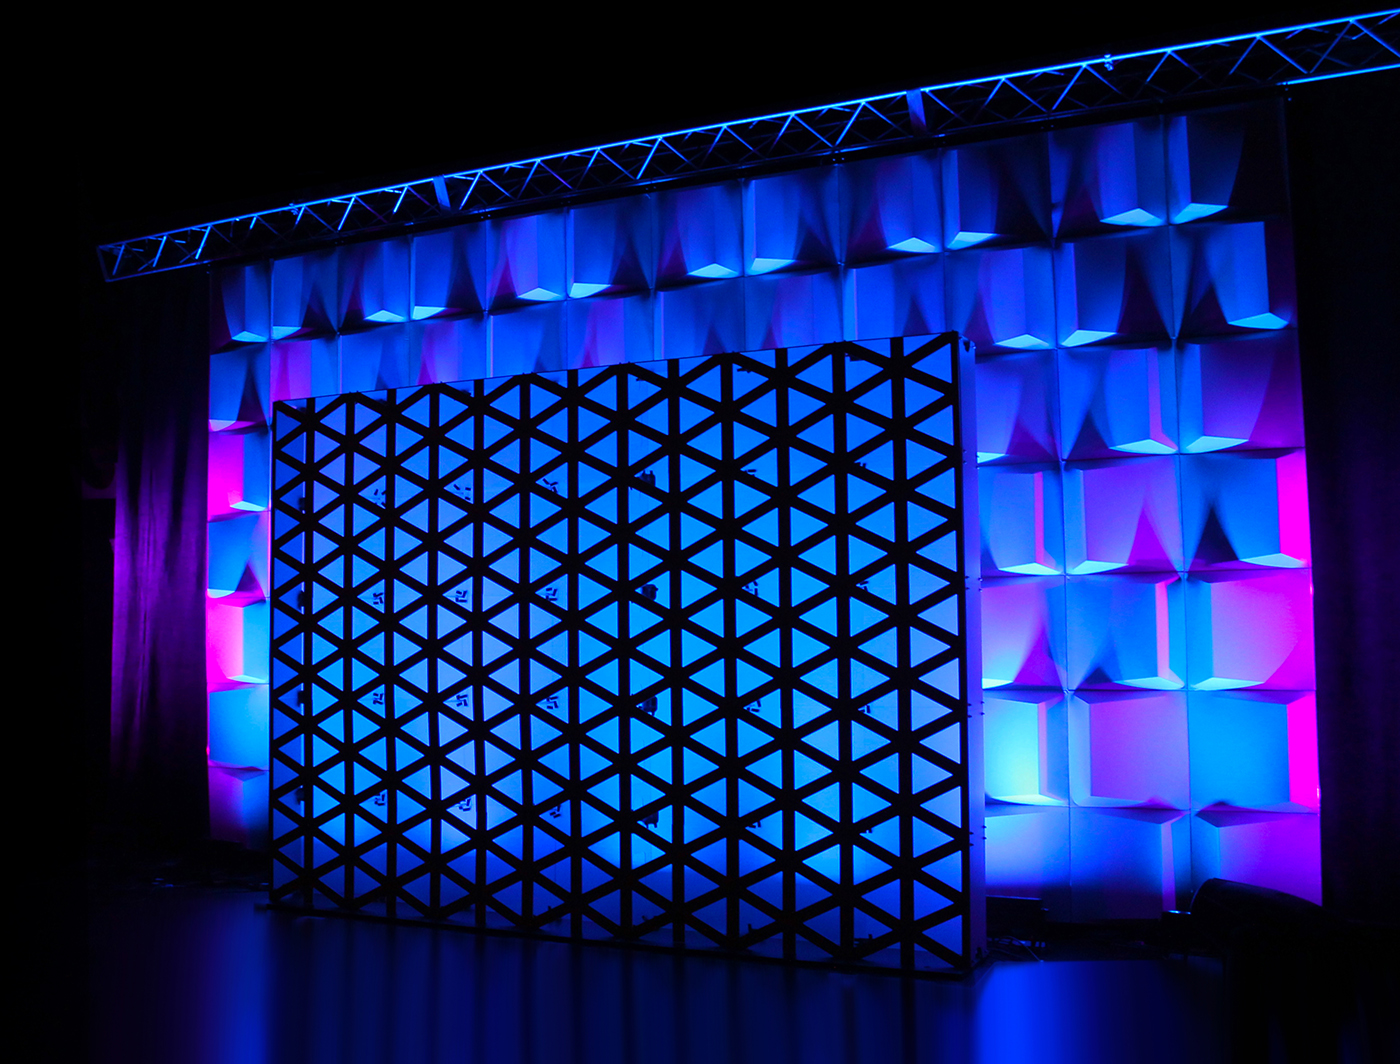 Triad SuperWall set the stage in front of this Wedge FABlok backdrop